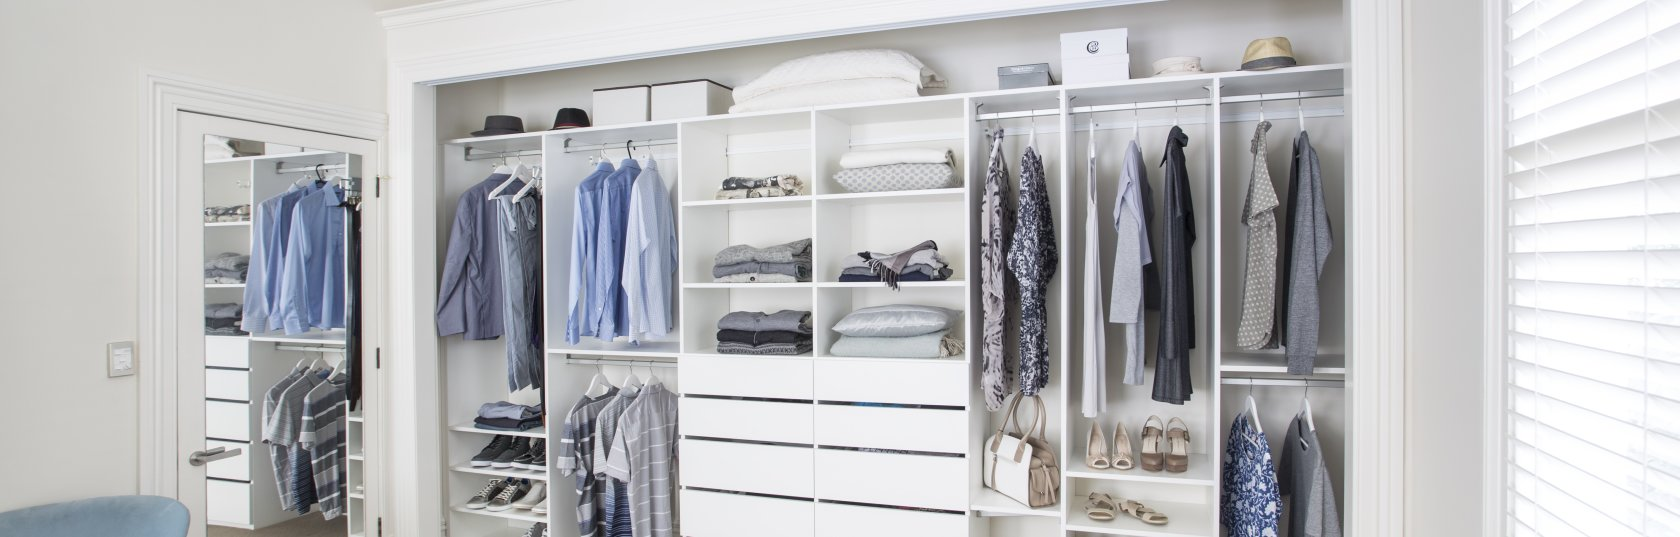 Sparking joy: clever storage solutions